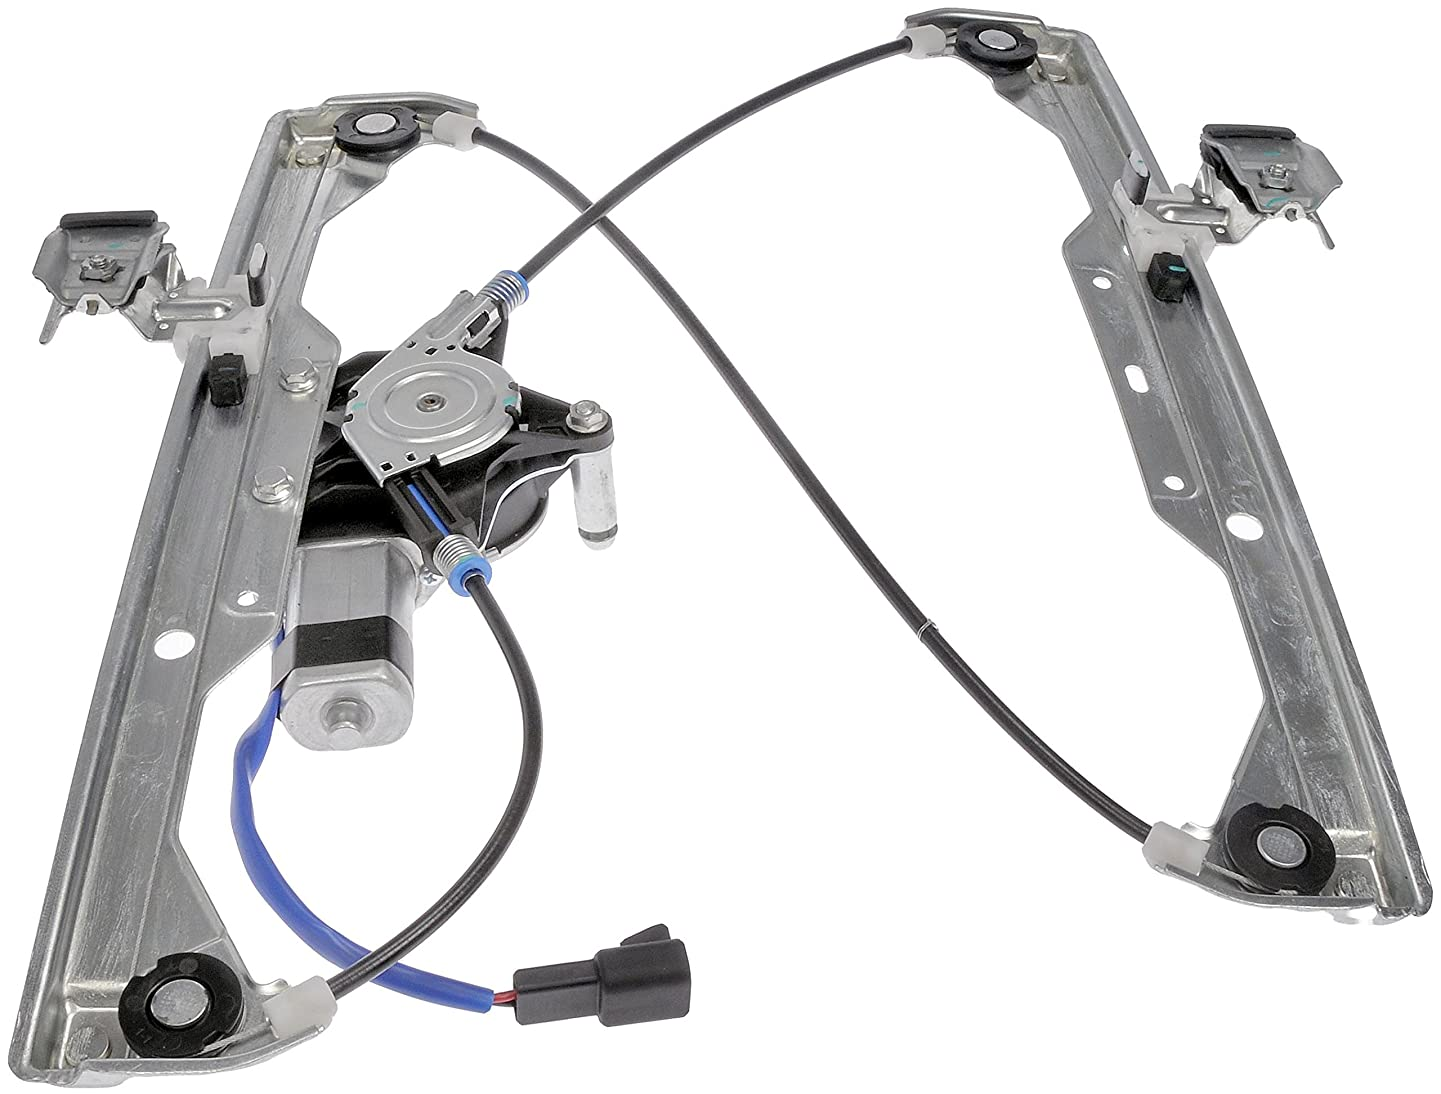 Dorman 741-438 Front Driver Side Replacement Power Window Regulator with Motor for Chevrolet HHR